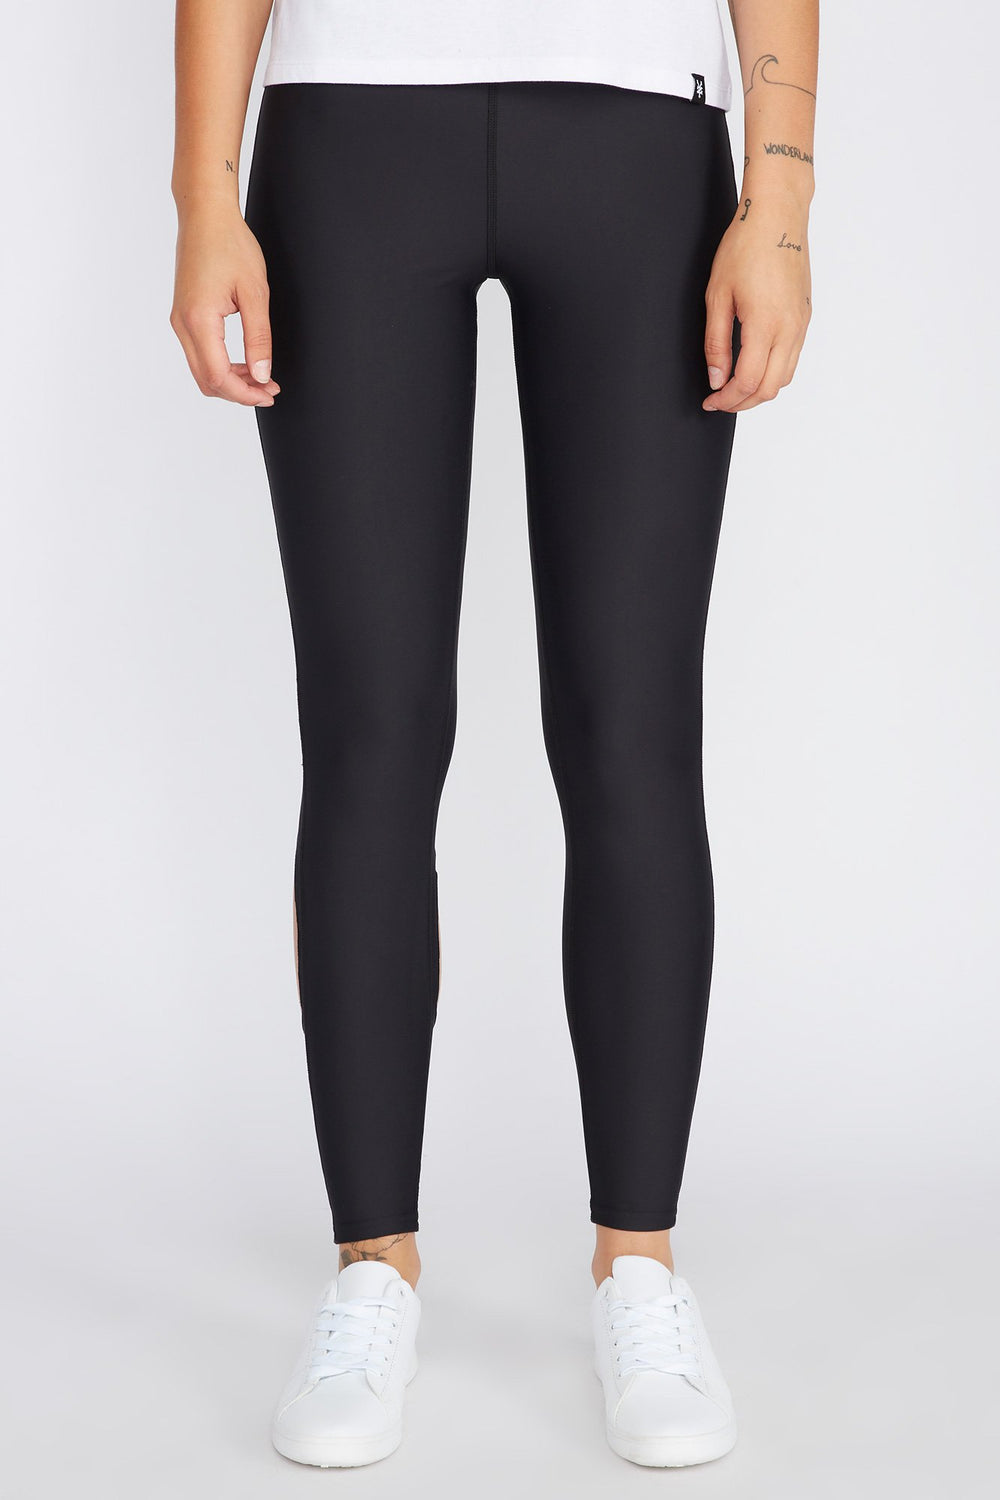 Zoo York Womens Leggings Black